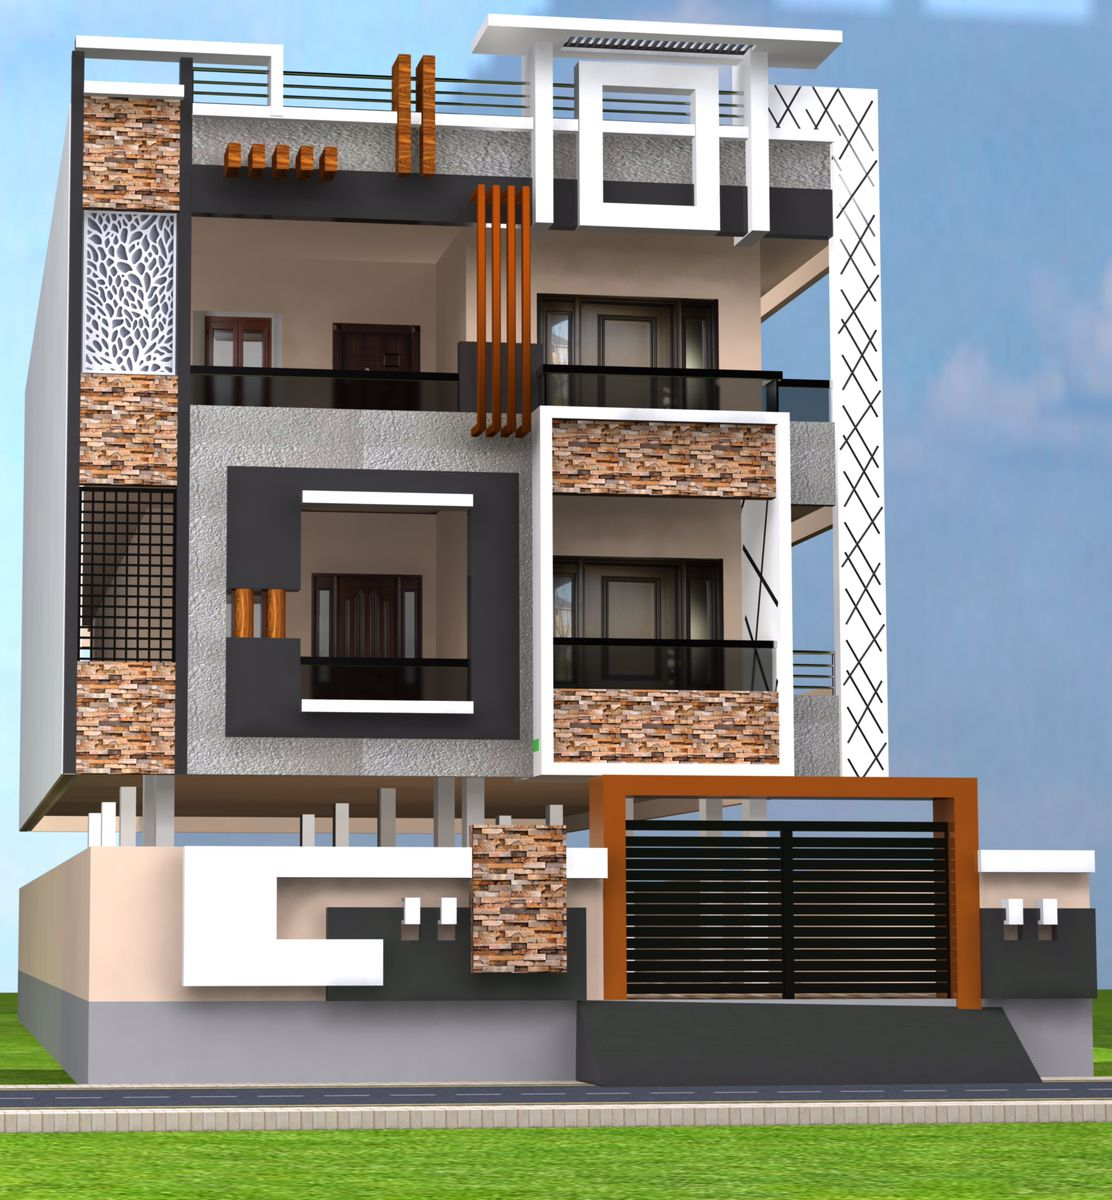 G+2 Elevation in 2020 2 storey house design, Bungalow